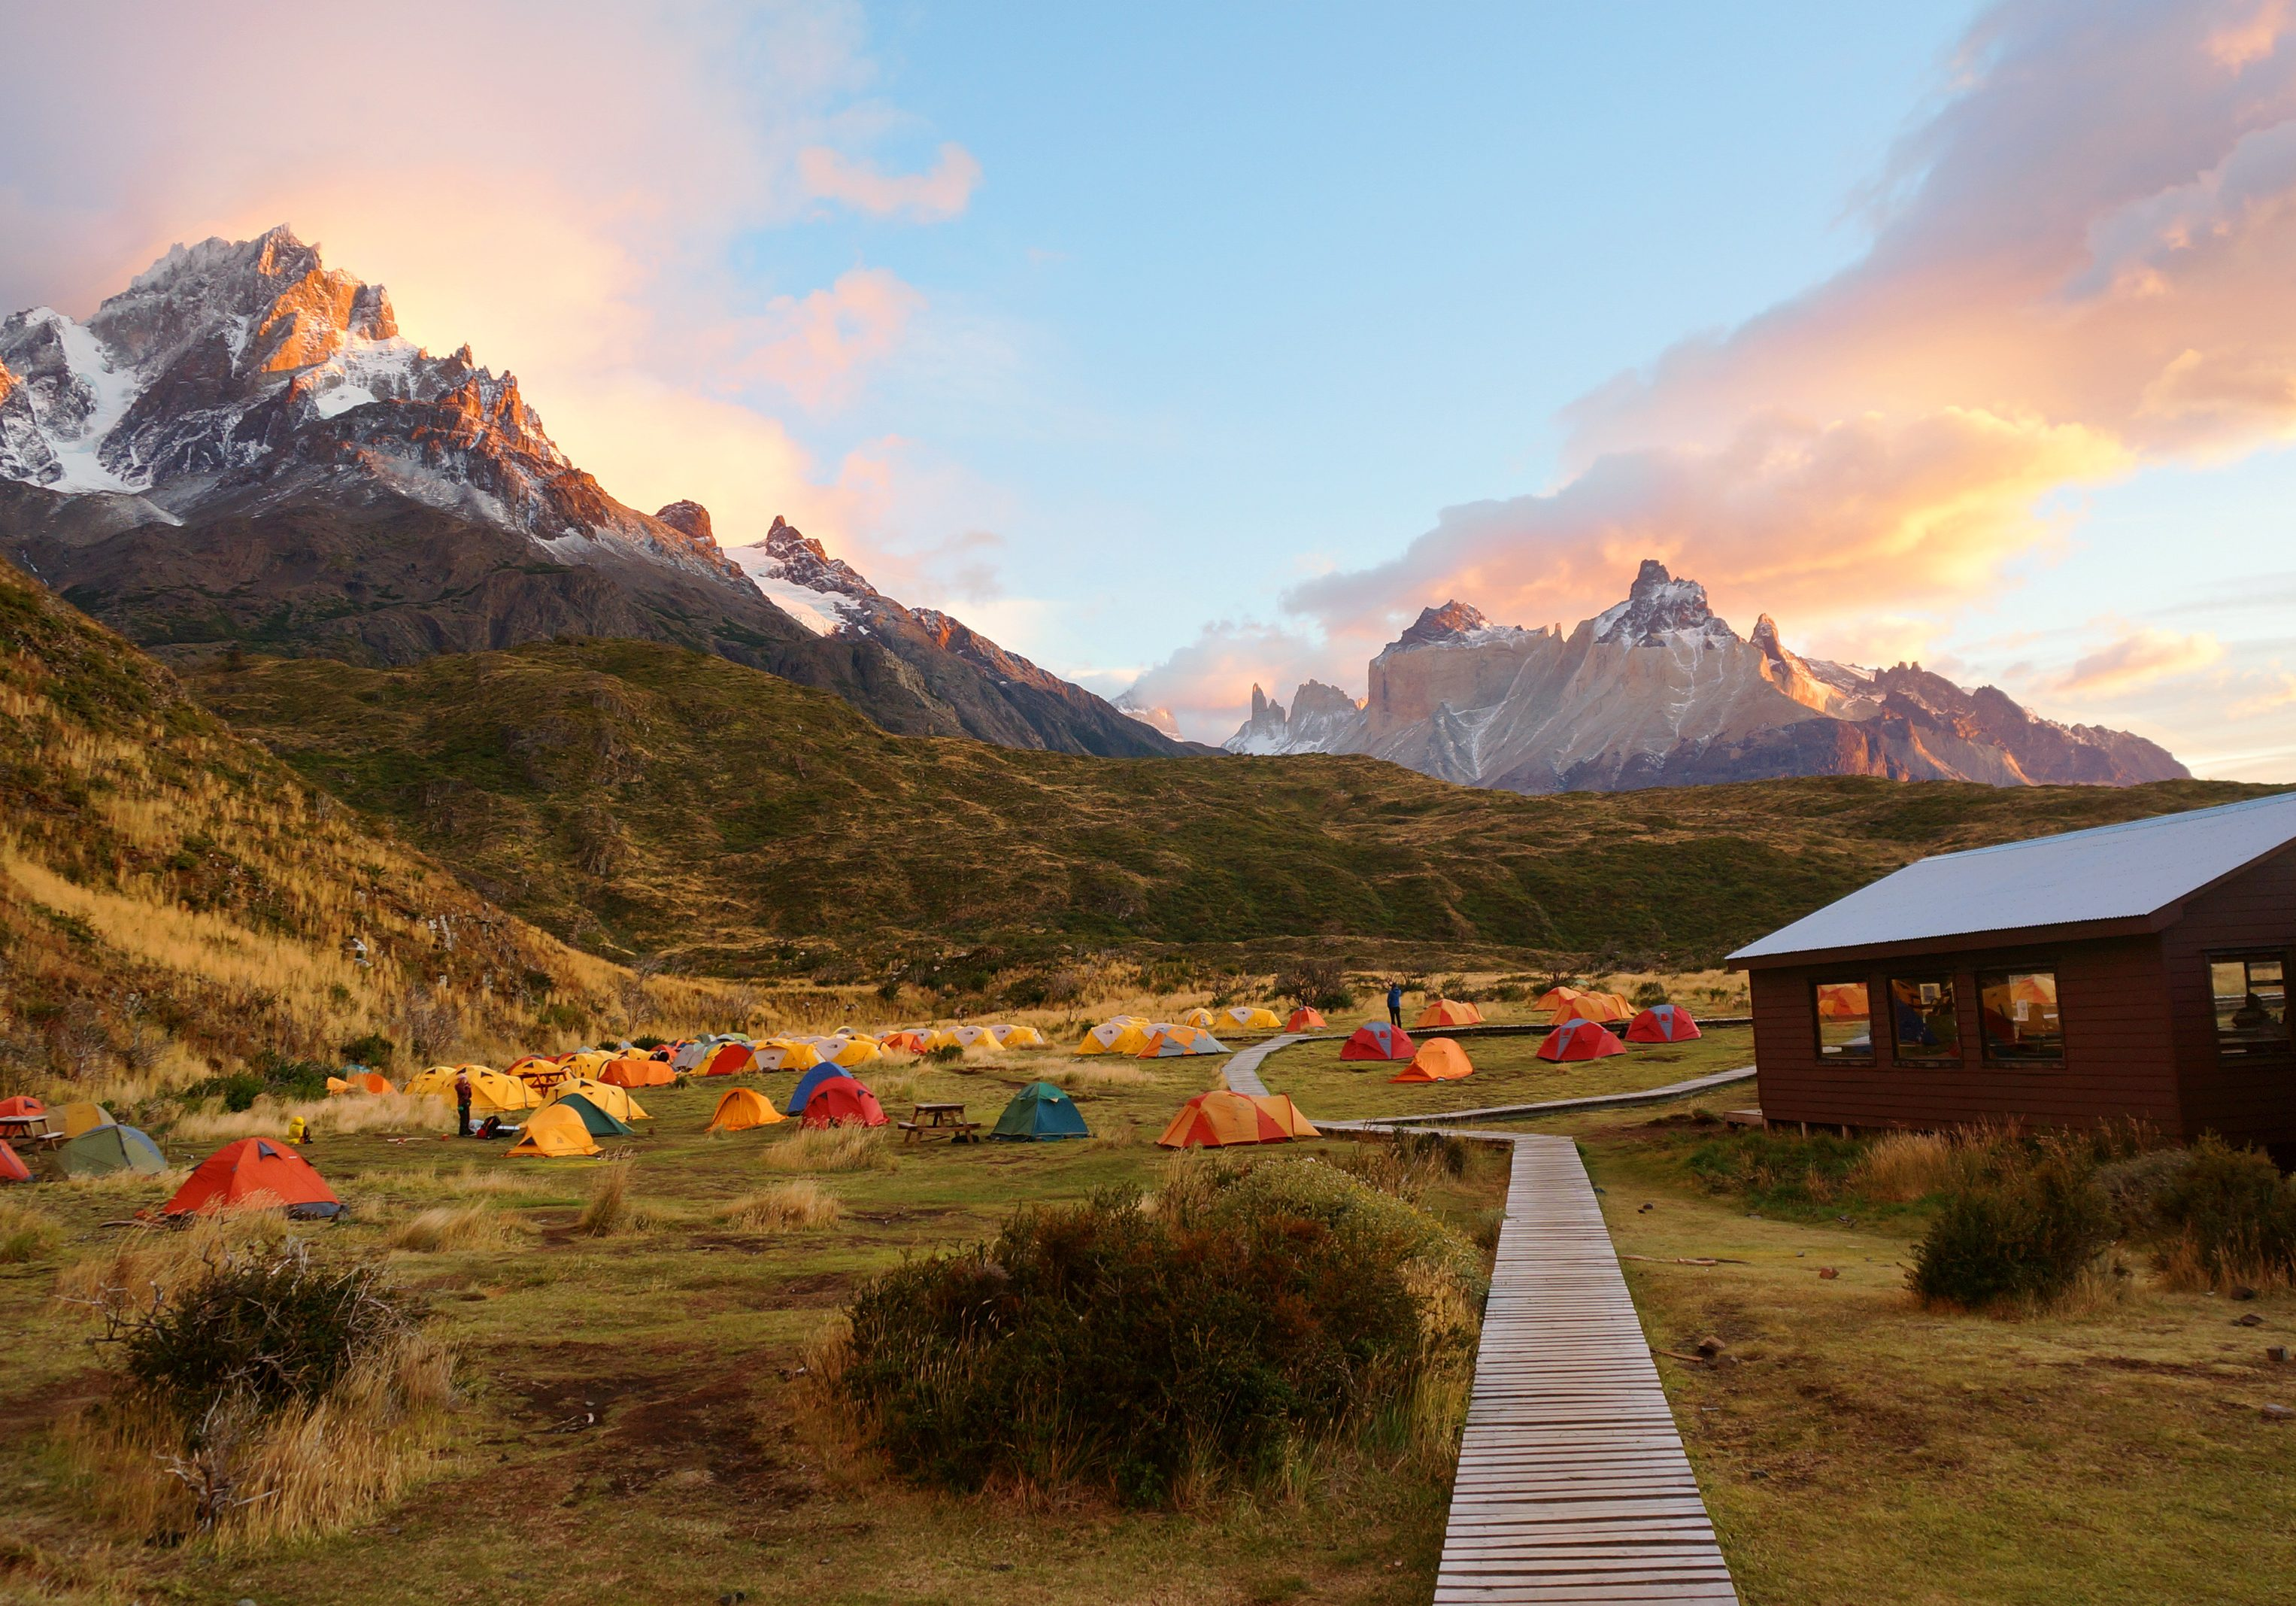 Camping in Torres Del Paine